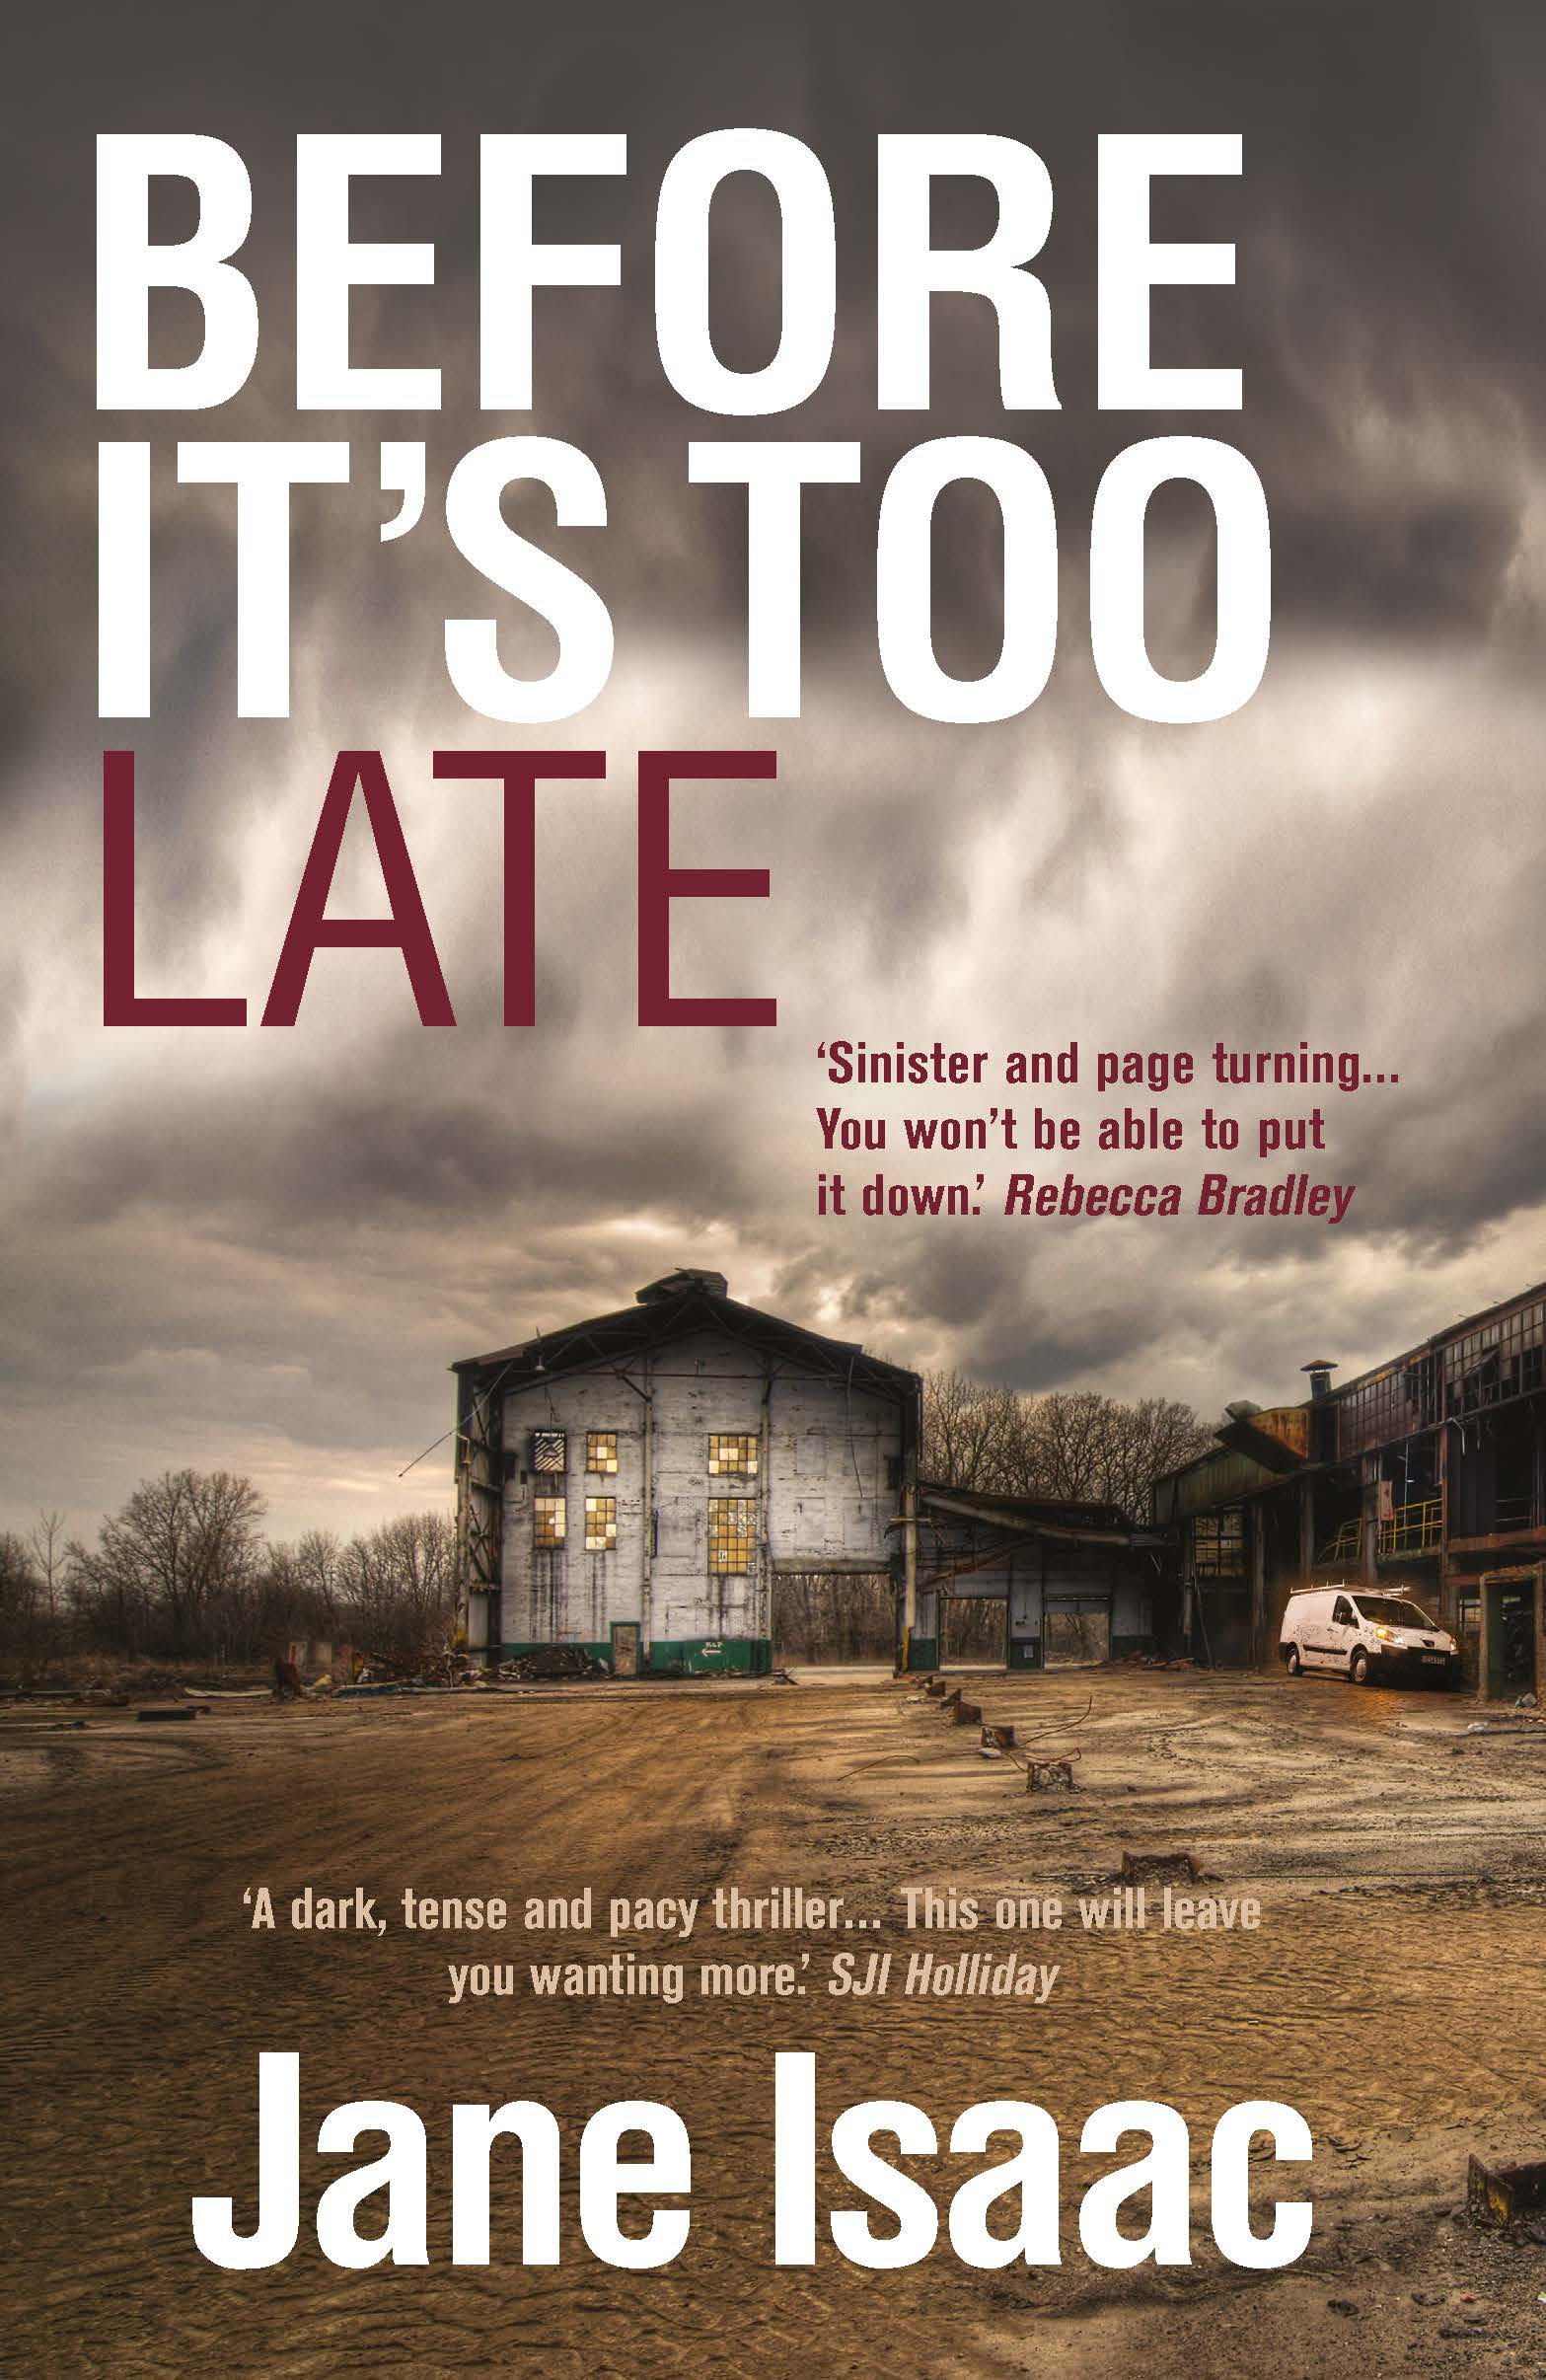 Before It's Too Late - Jane Isaac, Crime Fiction Author